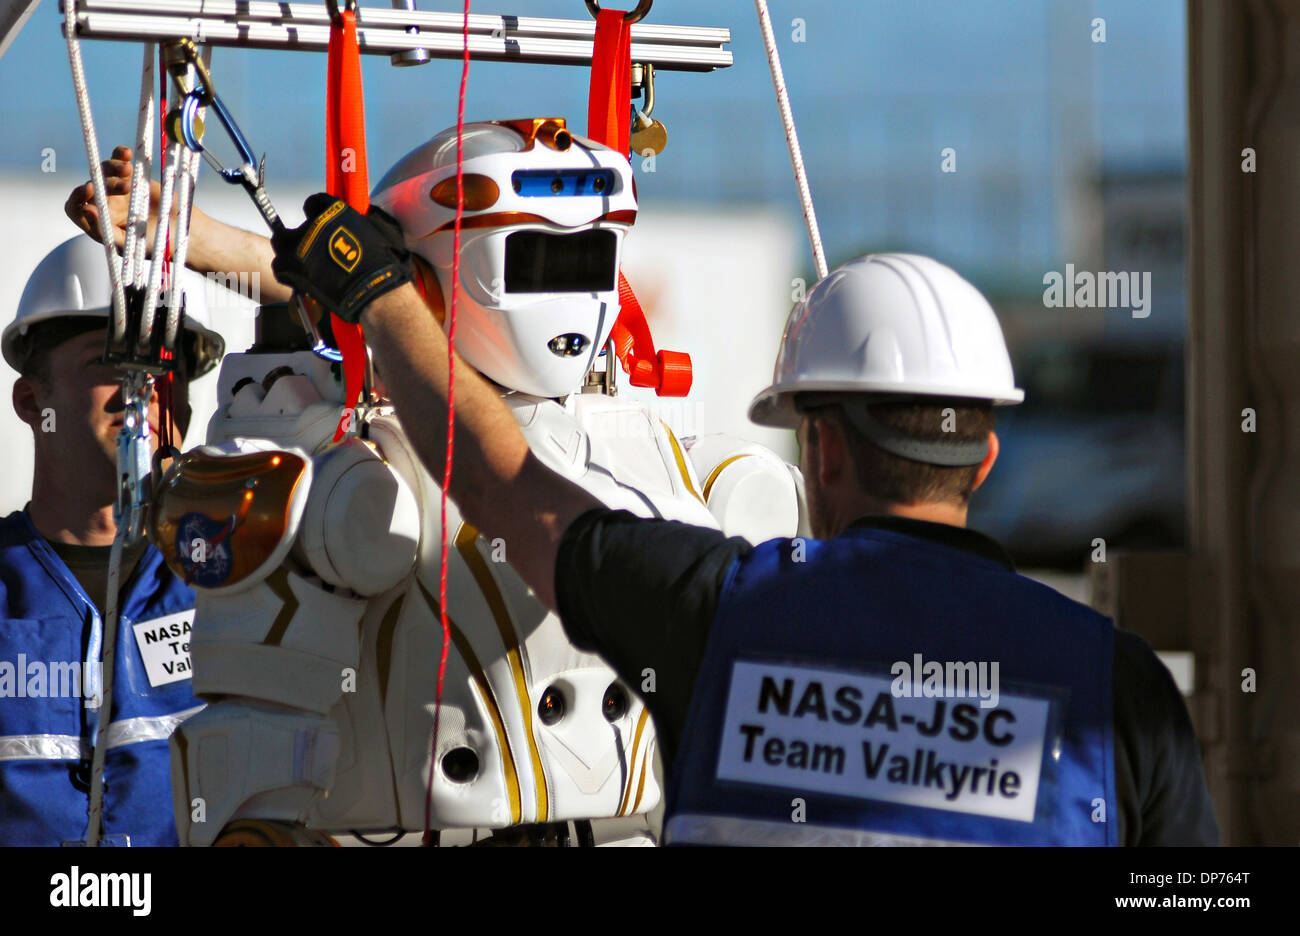 Technicians prepare the Valkyrie Humanoid Robot during the DARPA Rescue Robot Showdown at Homestead Miami Speedway December 20, 2013 in Homestead, FL. The DARPA event is to challenge teams to design robots that will conduct humanitarian, disaster relief and related operations. - Stock Image